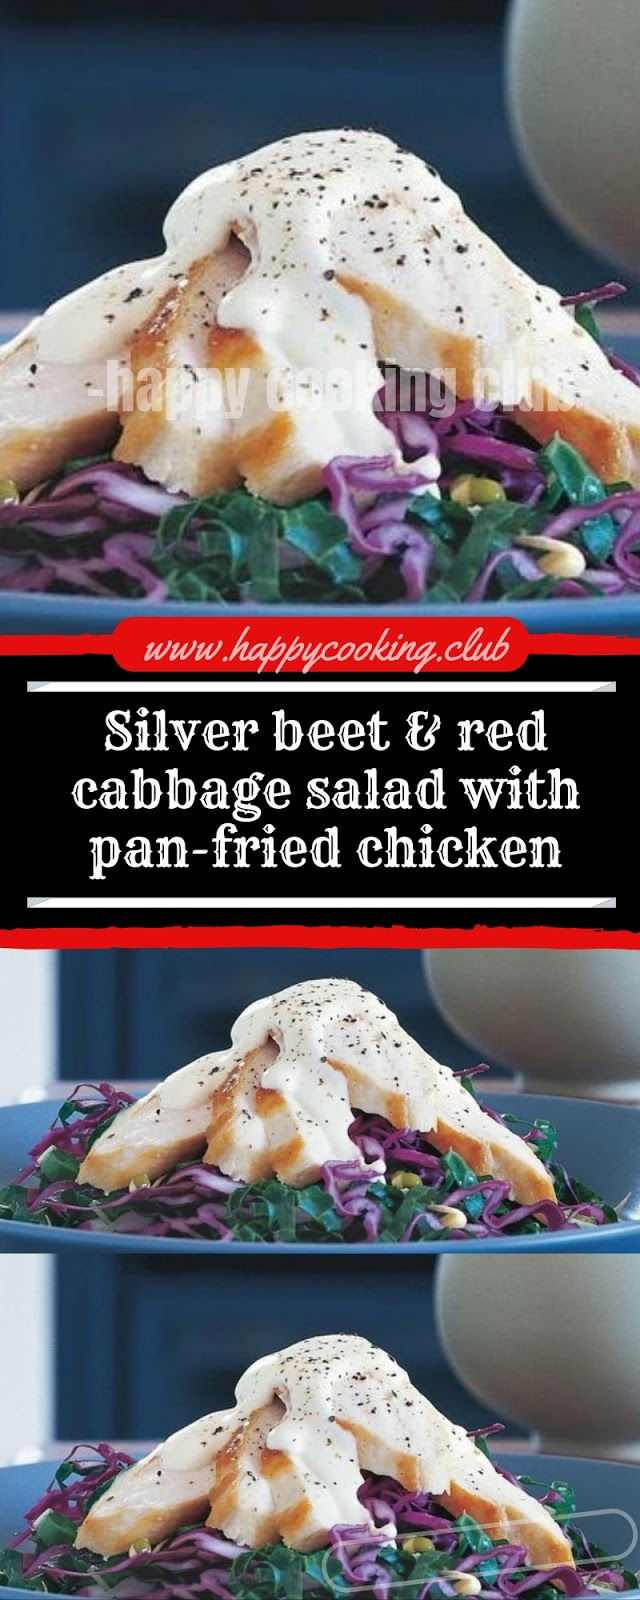 Silver beet & red cabbage salad with pan-fried chicken